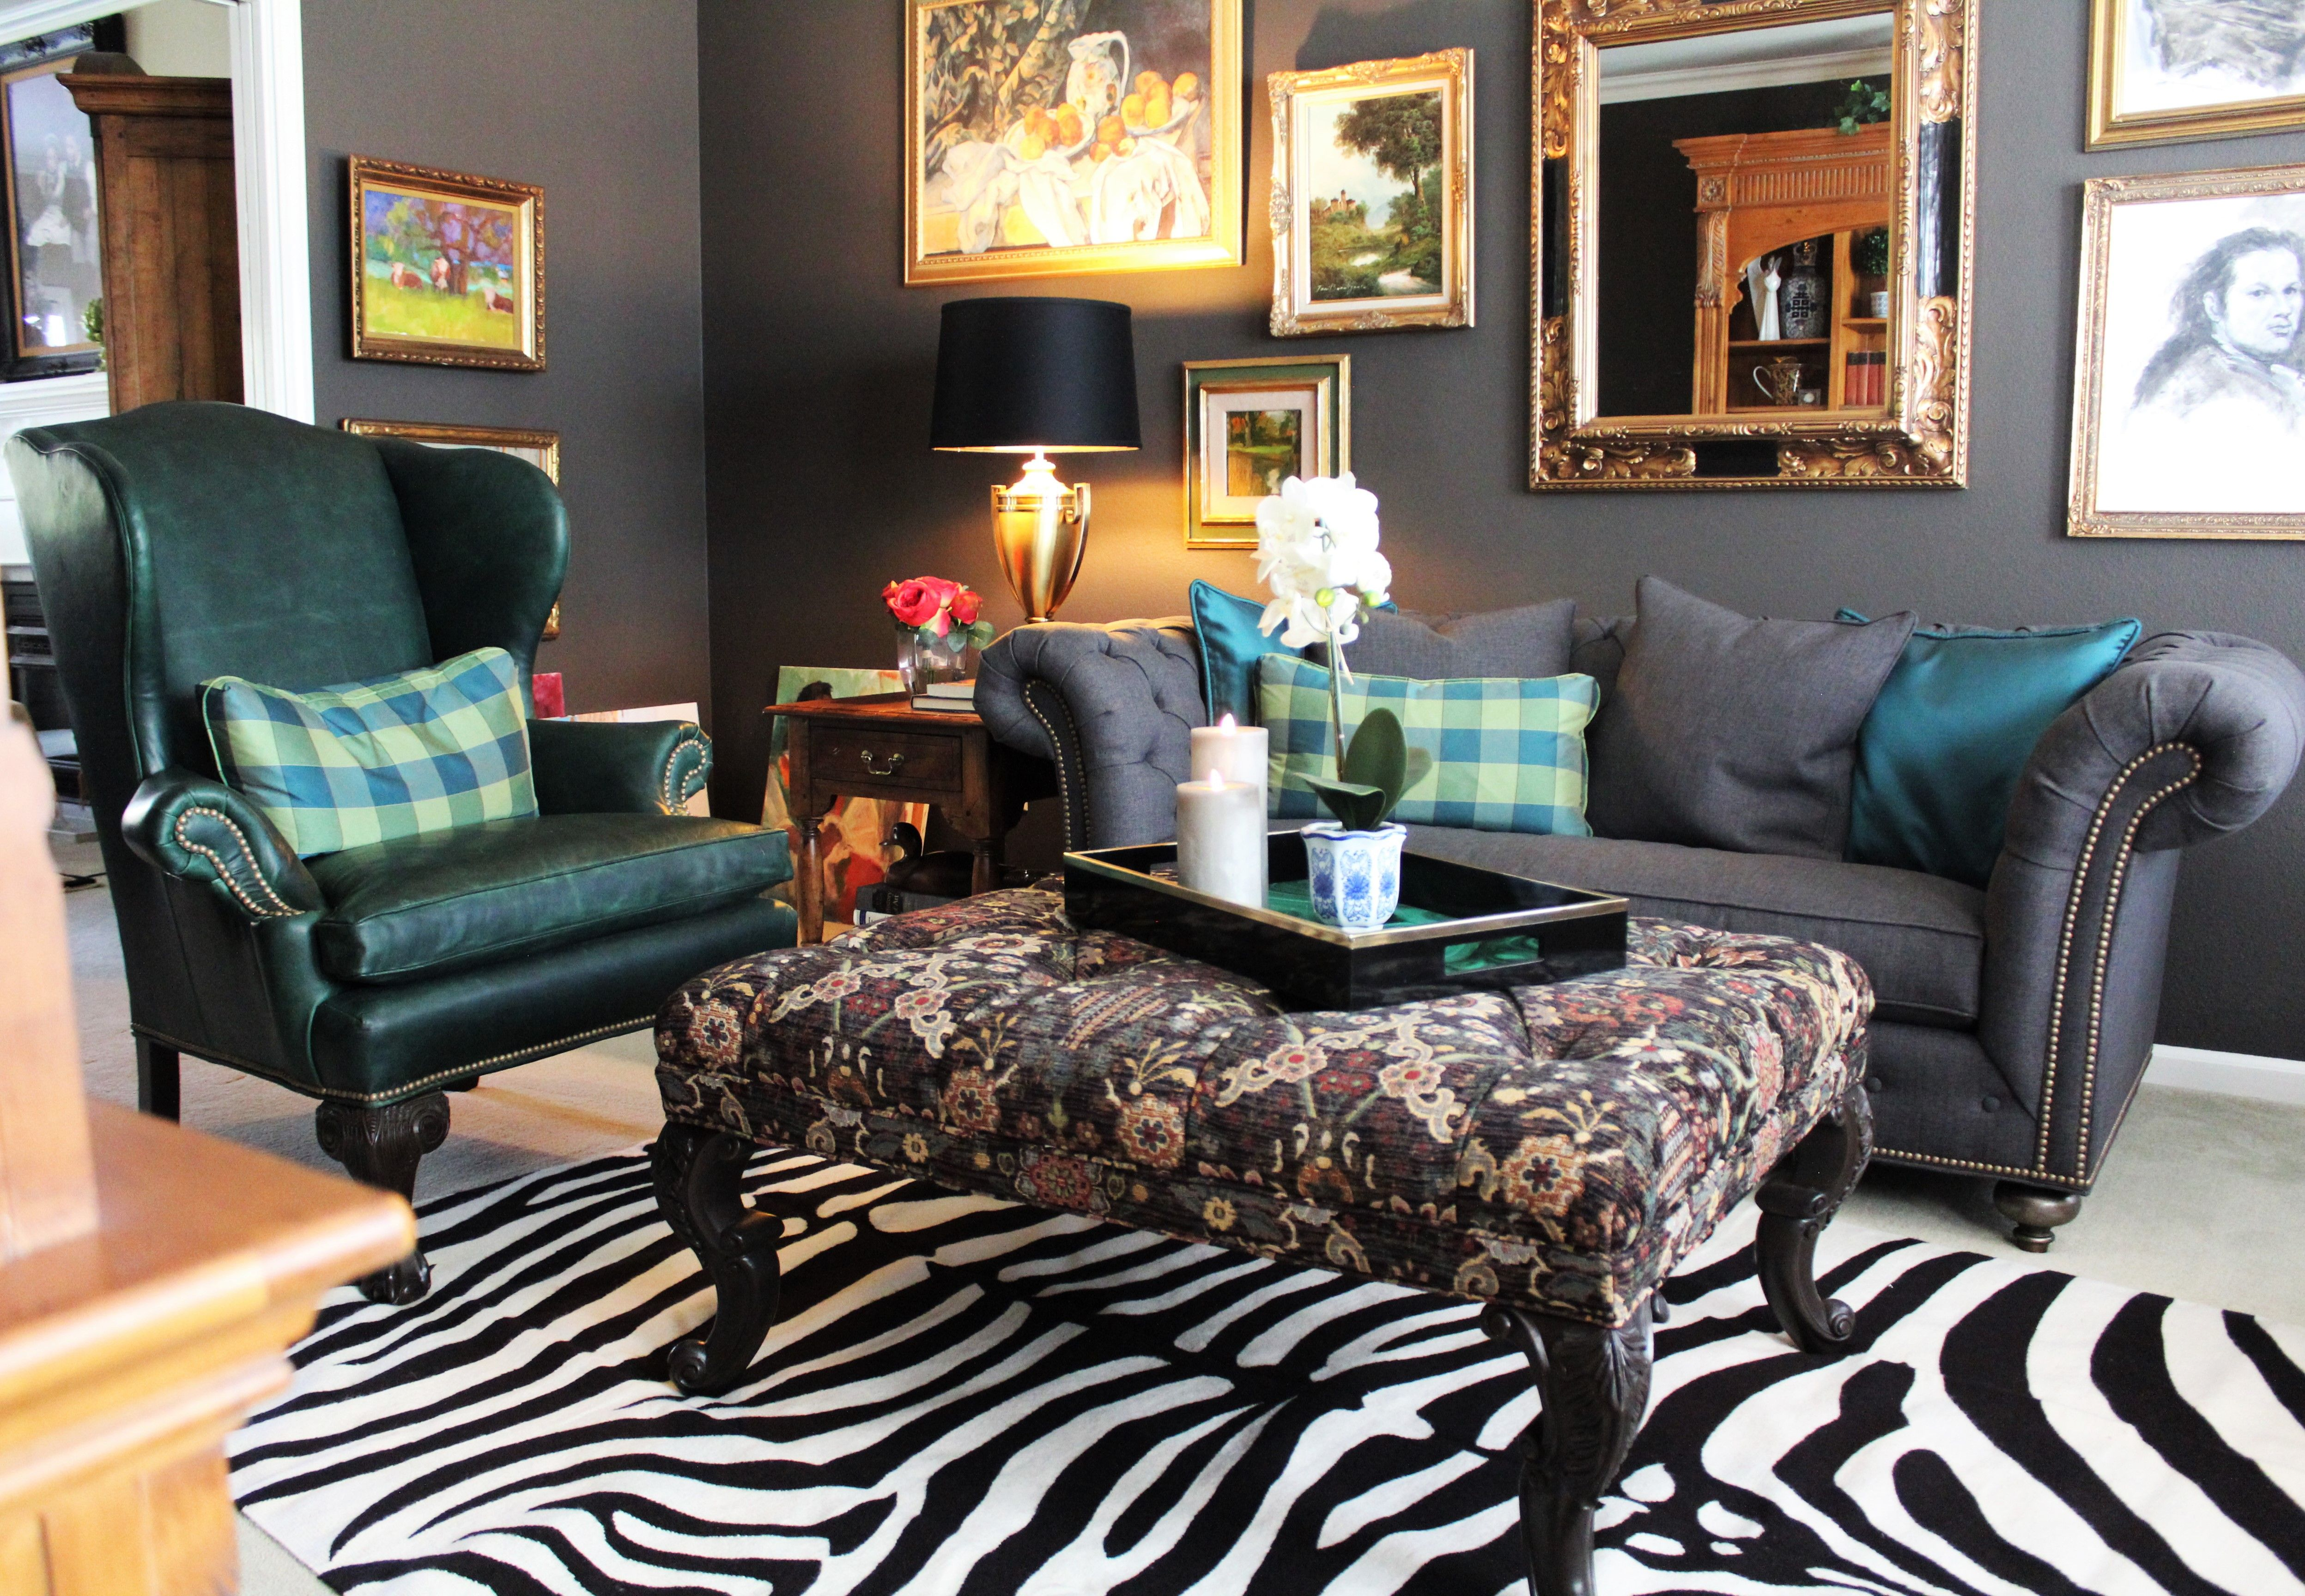 Giles chair in green waxed leather , Mansfield sofa, tapestry bench and Zebra rug and Salon style hangings to add a bit of whimsy to the somber  Black Fox -Den